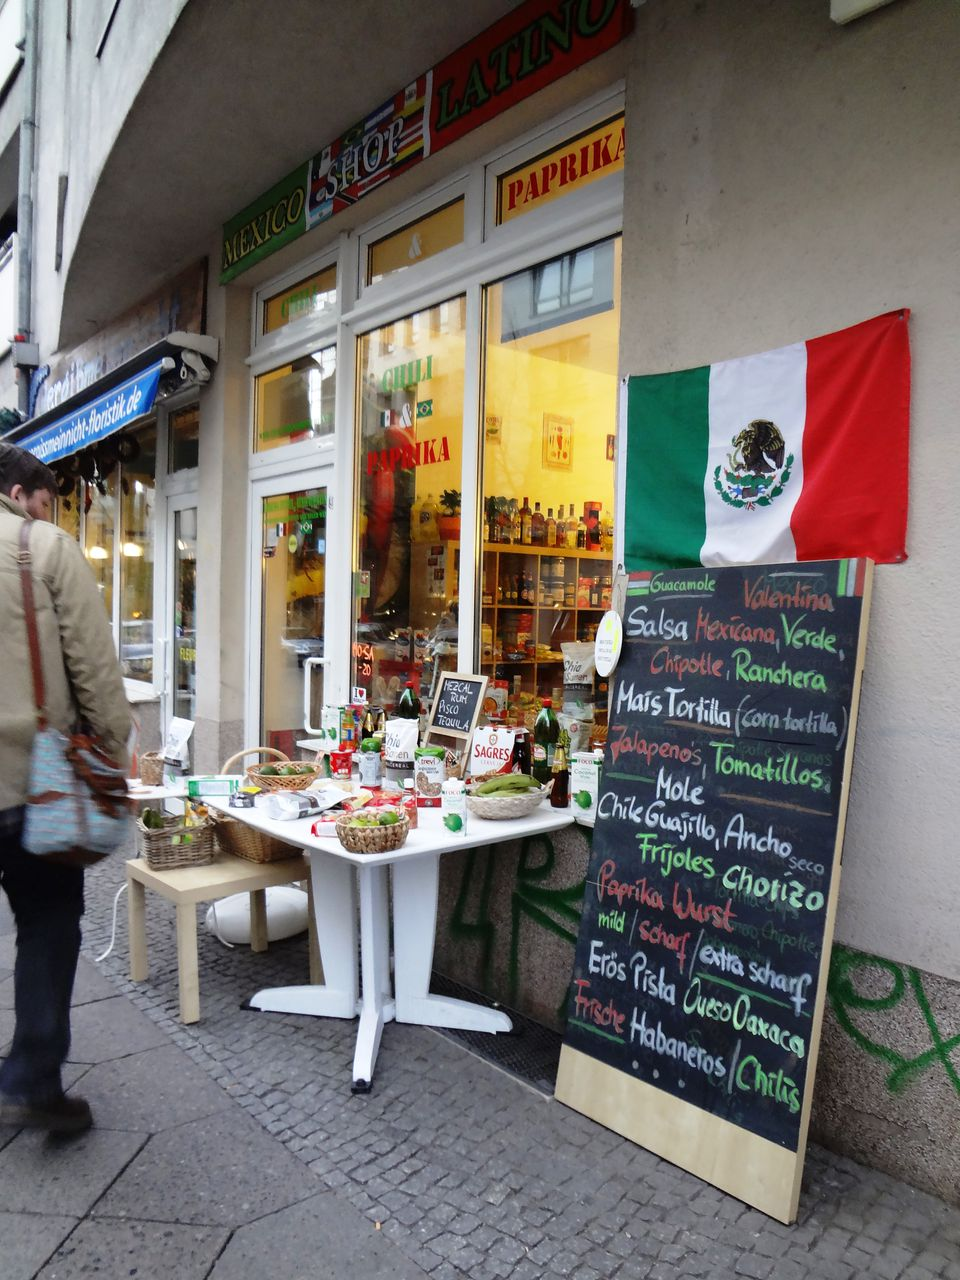 How To Make Mexican Food In Berlin